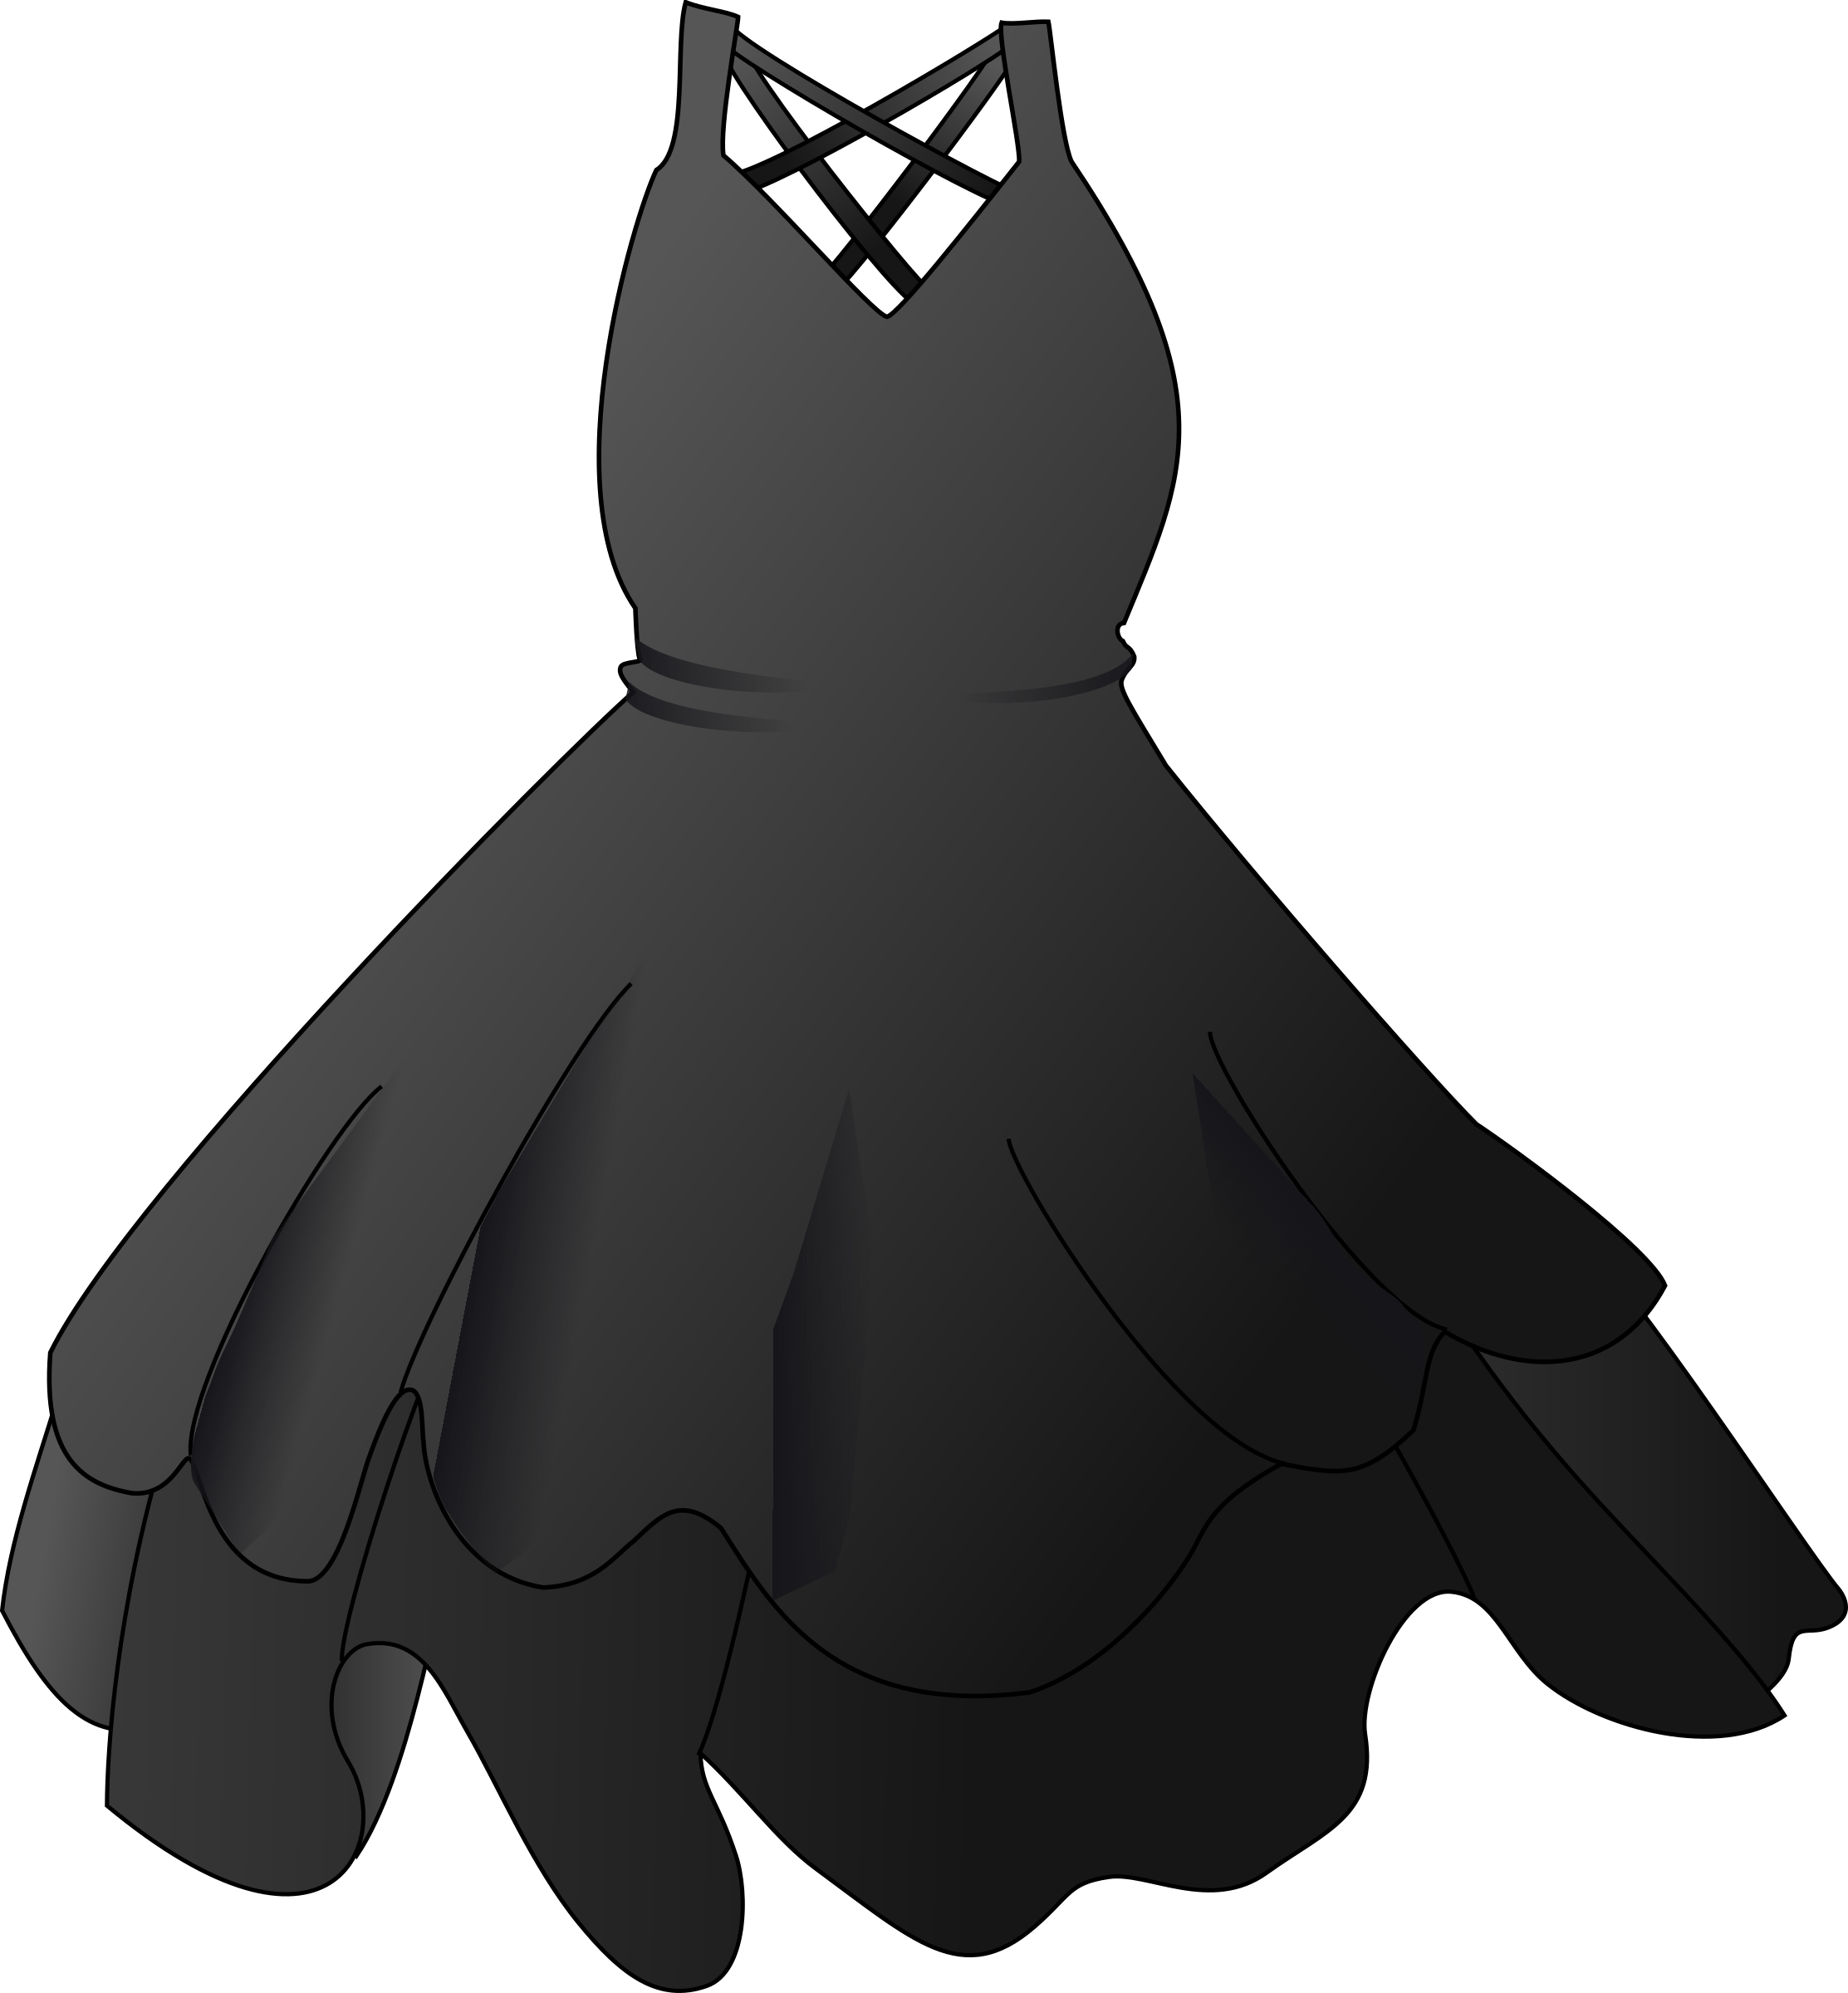 Dress clipart party dress. Black transparent png stickpng